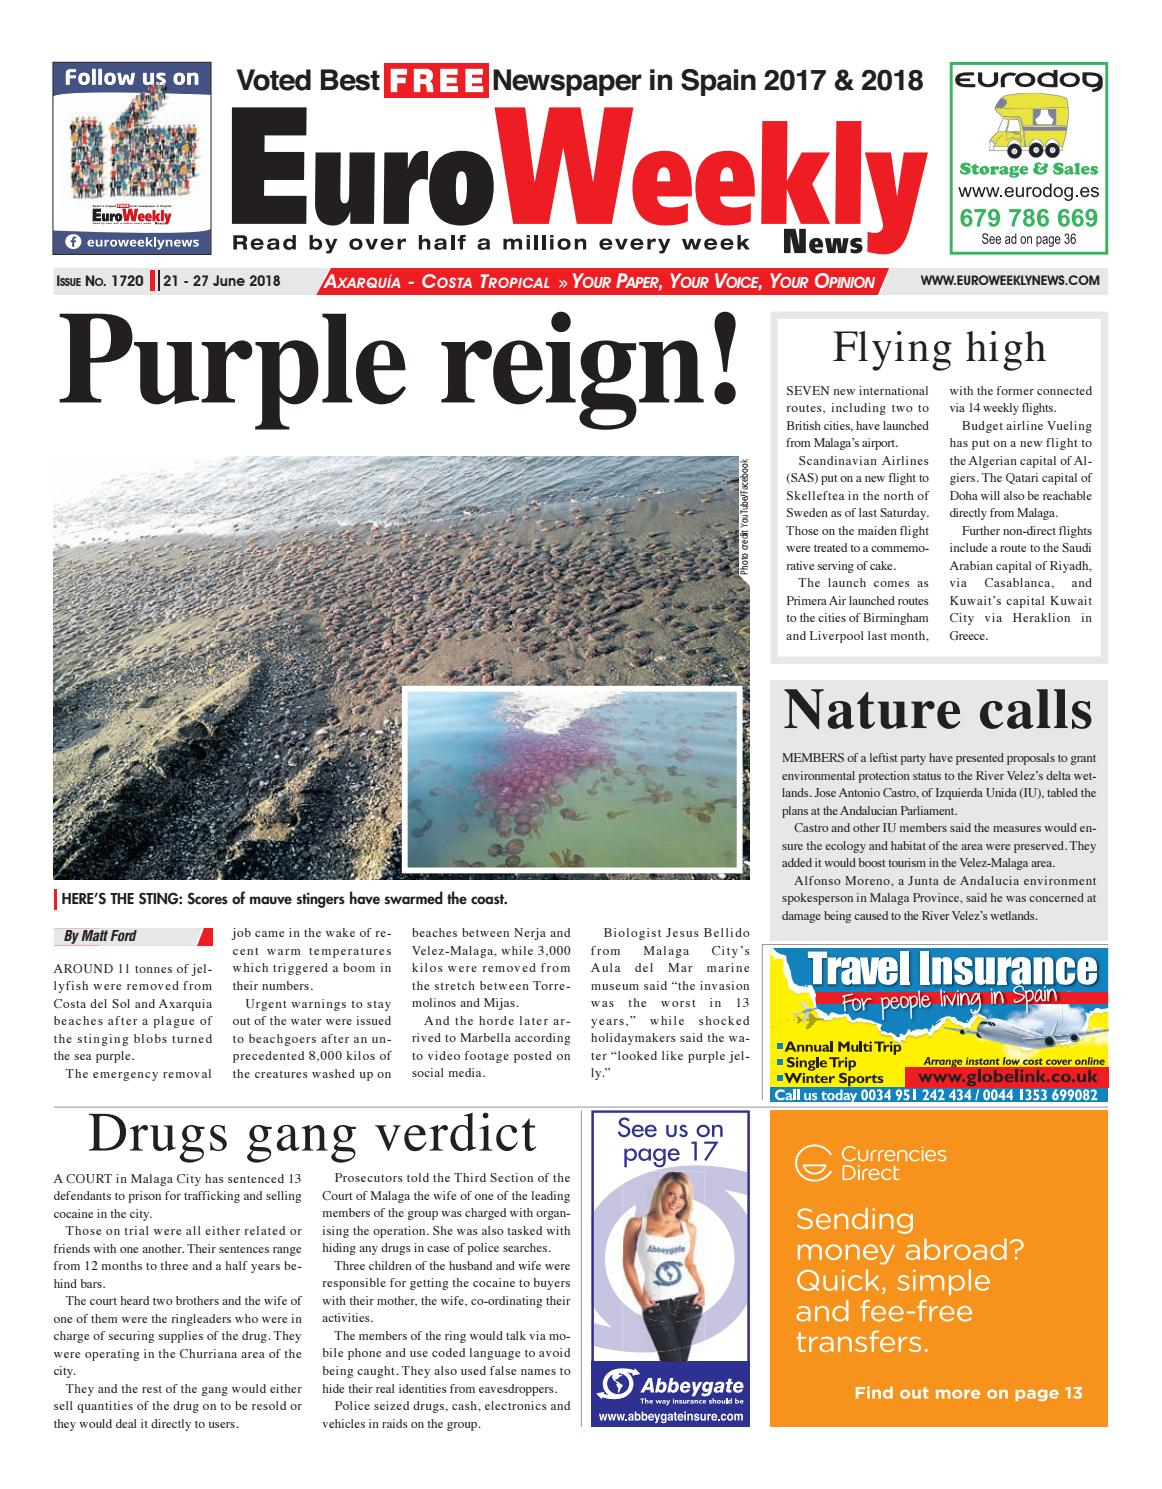 Euro Weekly News - Axarquia 21 - 27 June 2018 Issue 1720 by Euro ...